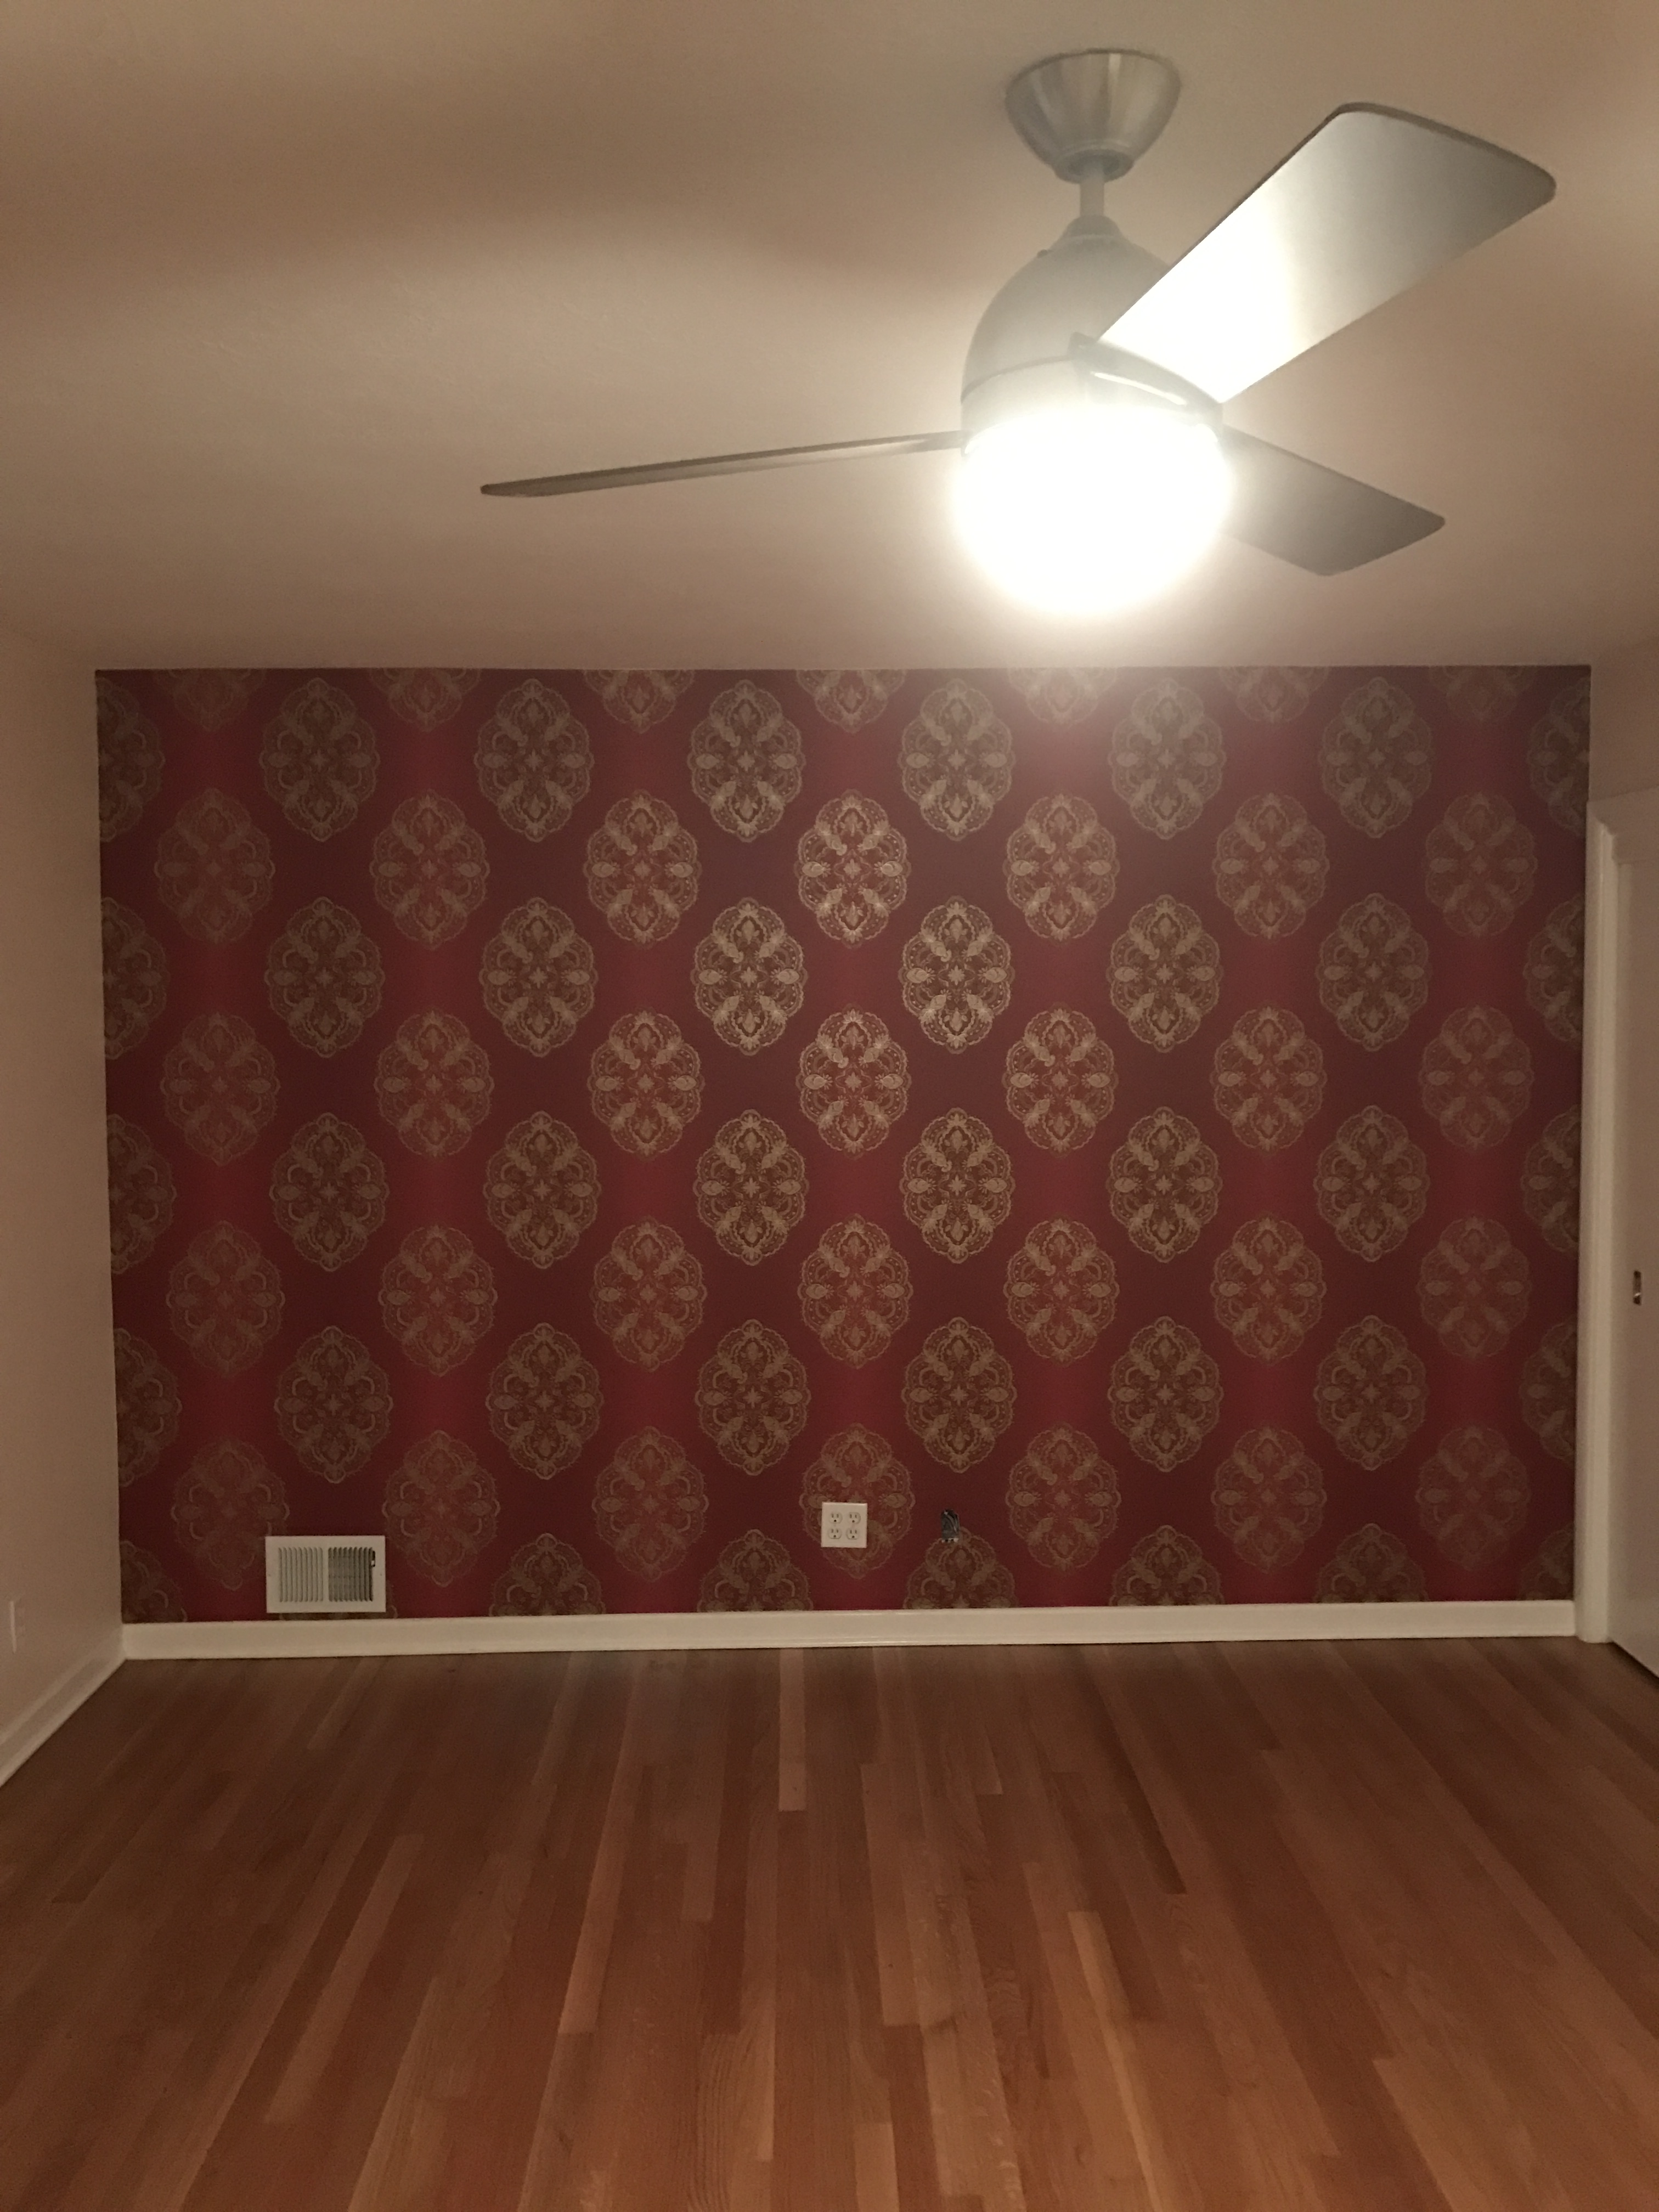 Our service team is mad Custom red wallpaper hanging service provided by Blue Sky PDX in Portland, Oregon